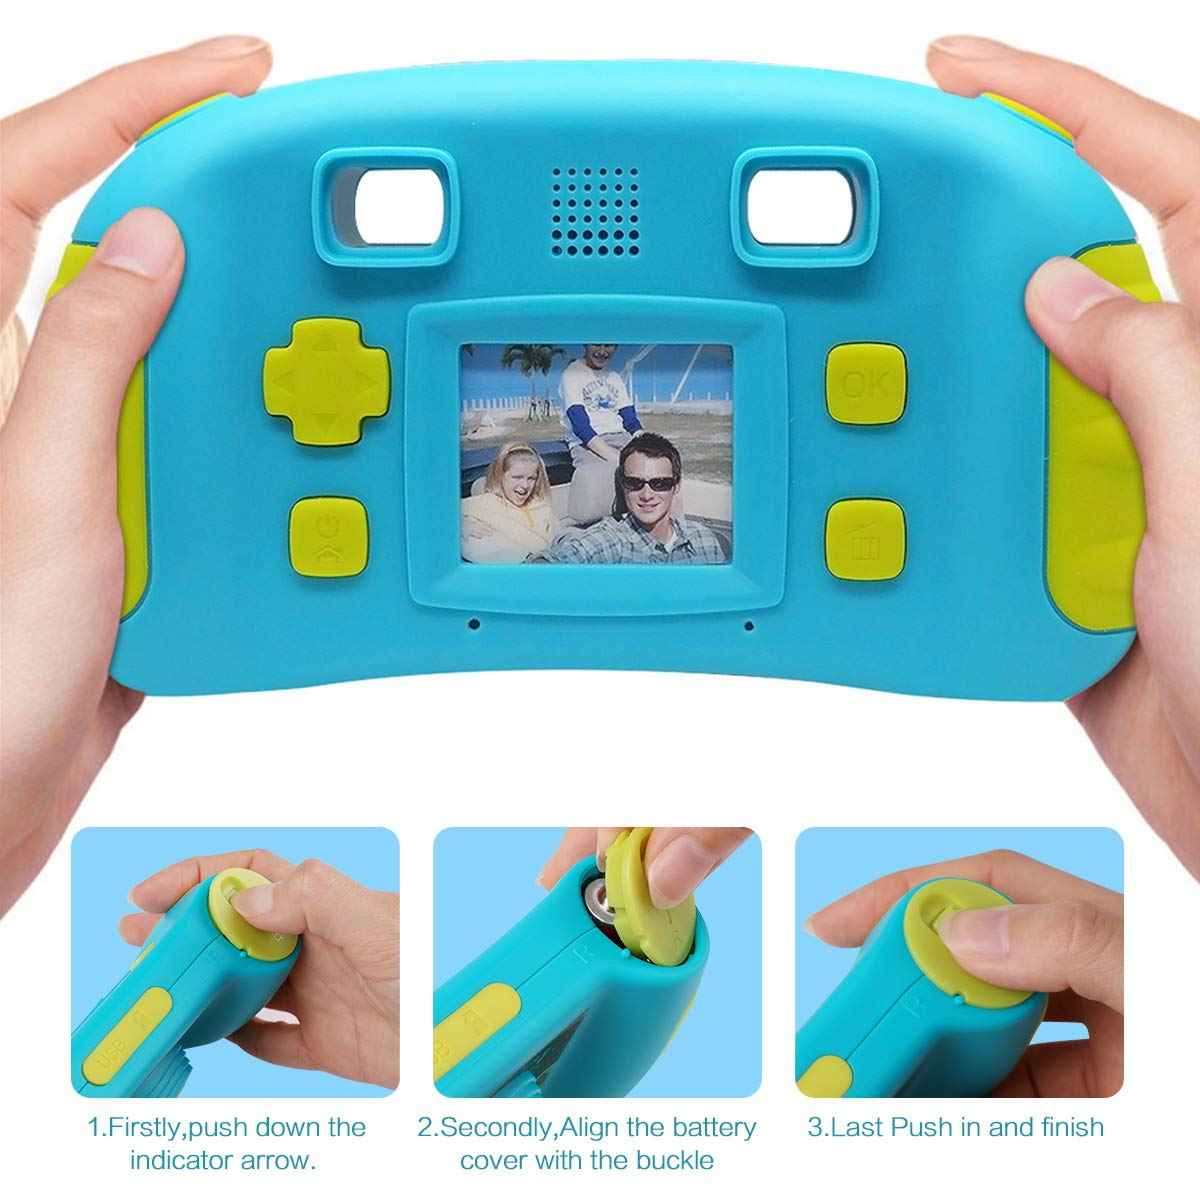 HankeRobotics Kids Digital Camera, with 8GB Micro SD Card, Kids Digital Photo/Video Camera with 4X Zoom, 1.7 Inch Screen Screen Action Camera Camcorder for Children Boys Girls Birthday Gift,Blue by HankeRobotics (Image #6)